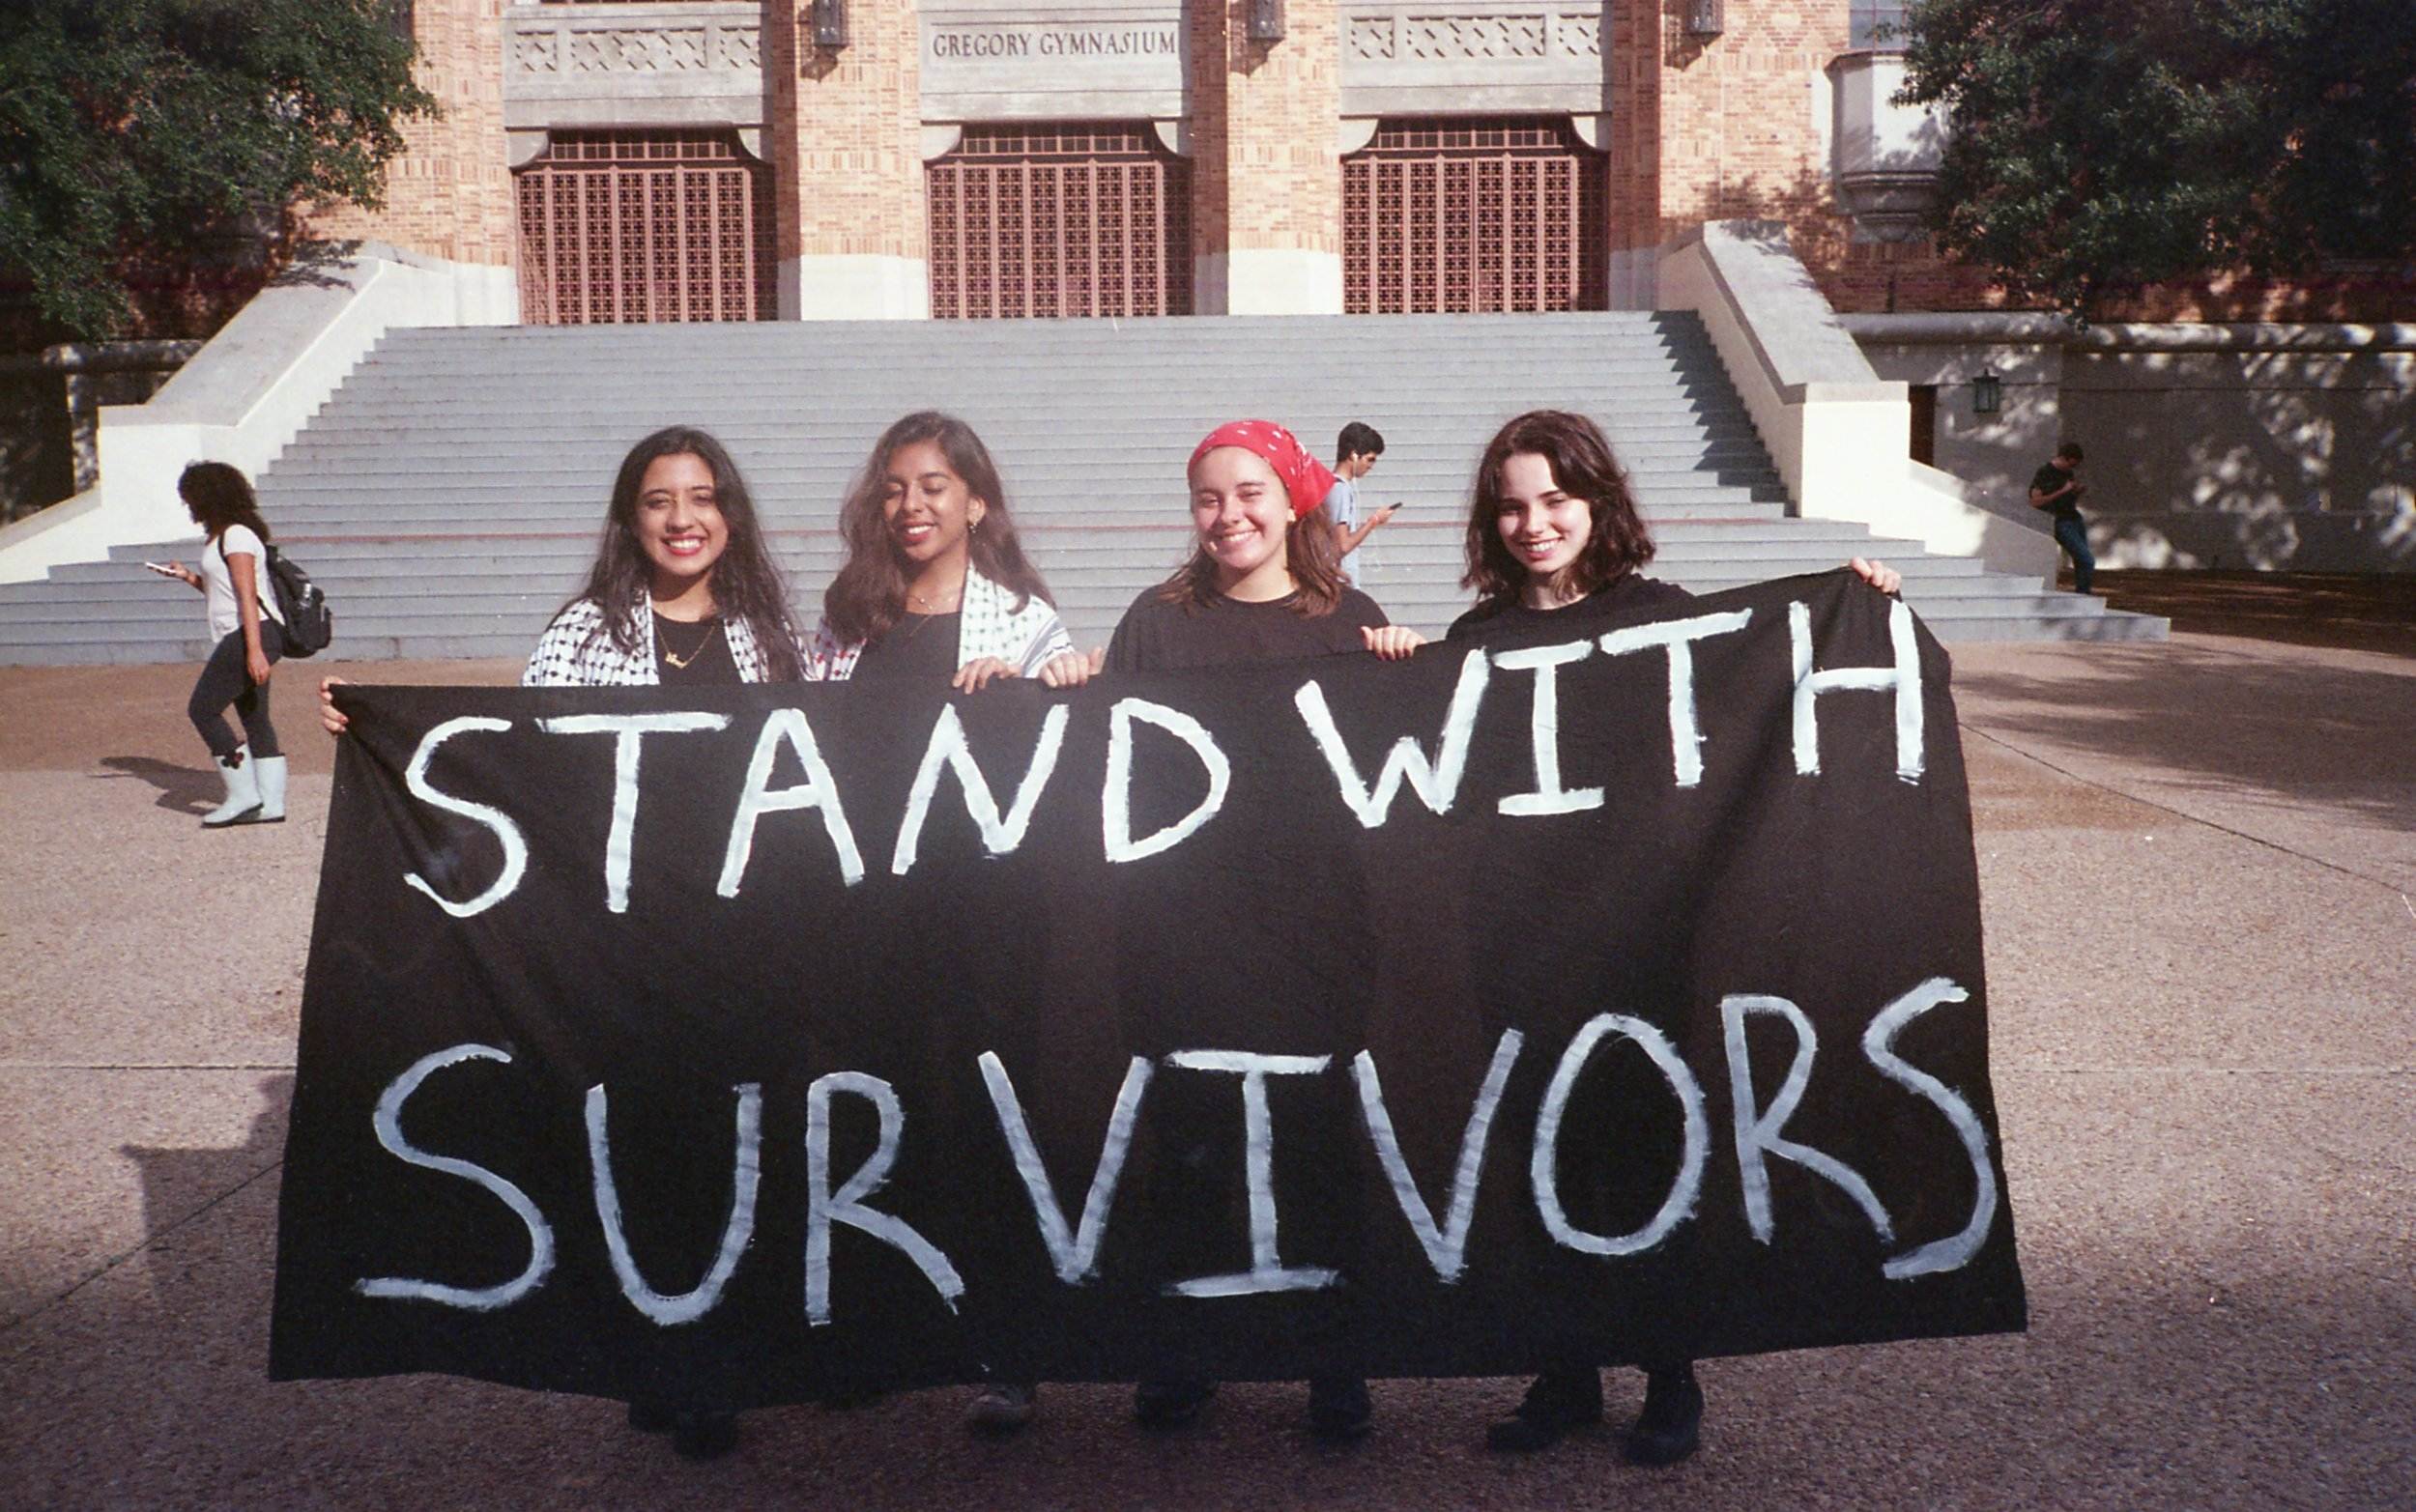 The organizers of the event, Sonya, Rimsha, Angel and Sarah pose for a photo with a Stand with Survivors sign